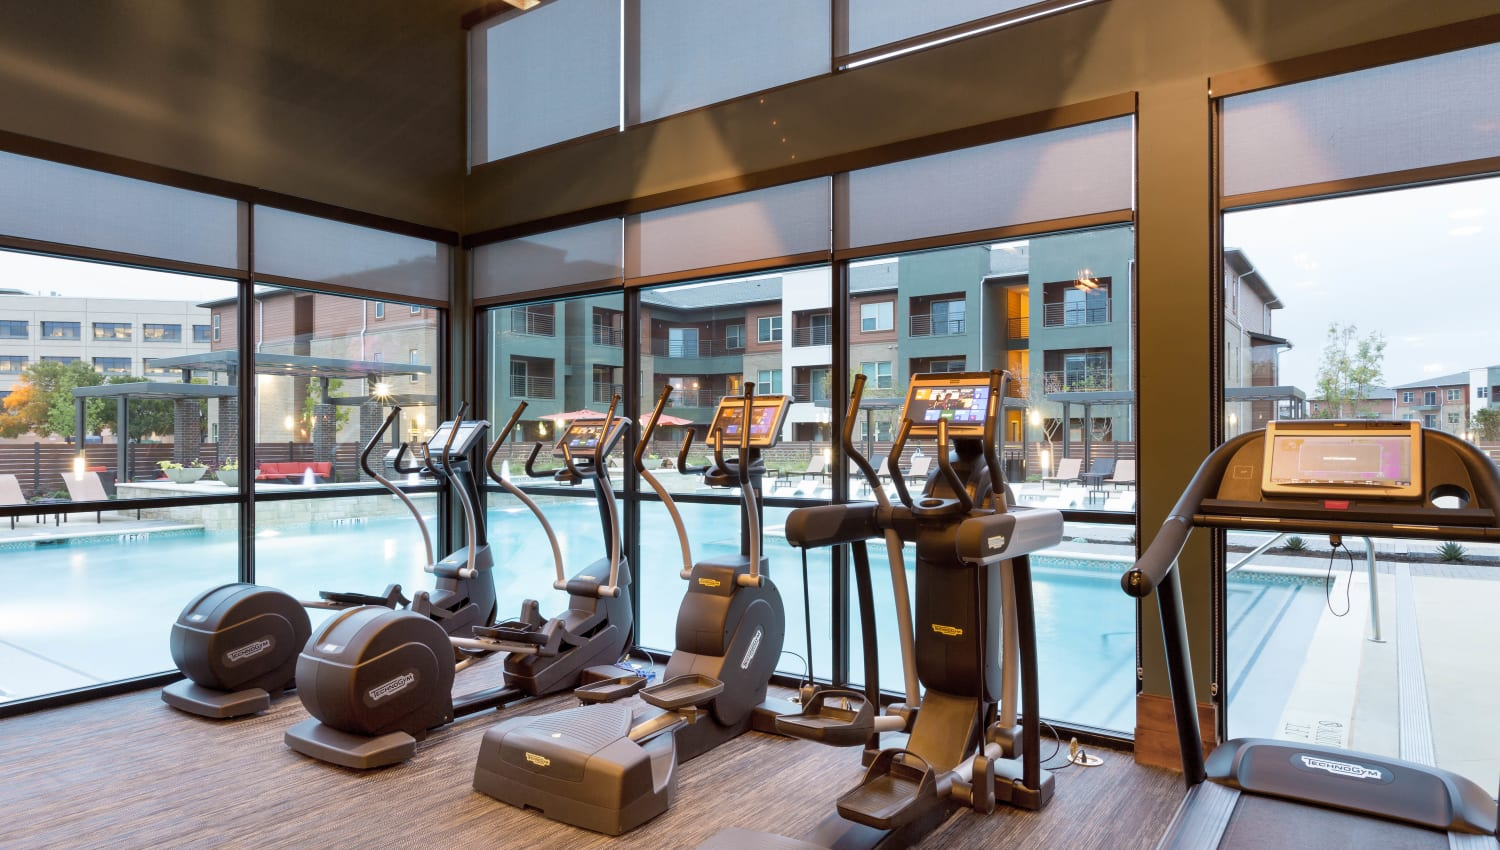 Cardio equipment with a prime view of the swimming pool at The Davis in Fort Worth, Texas